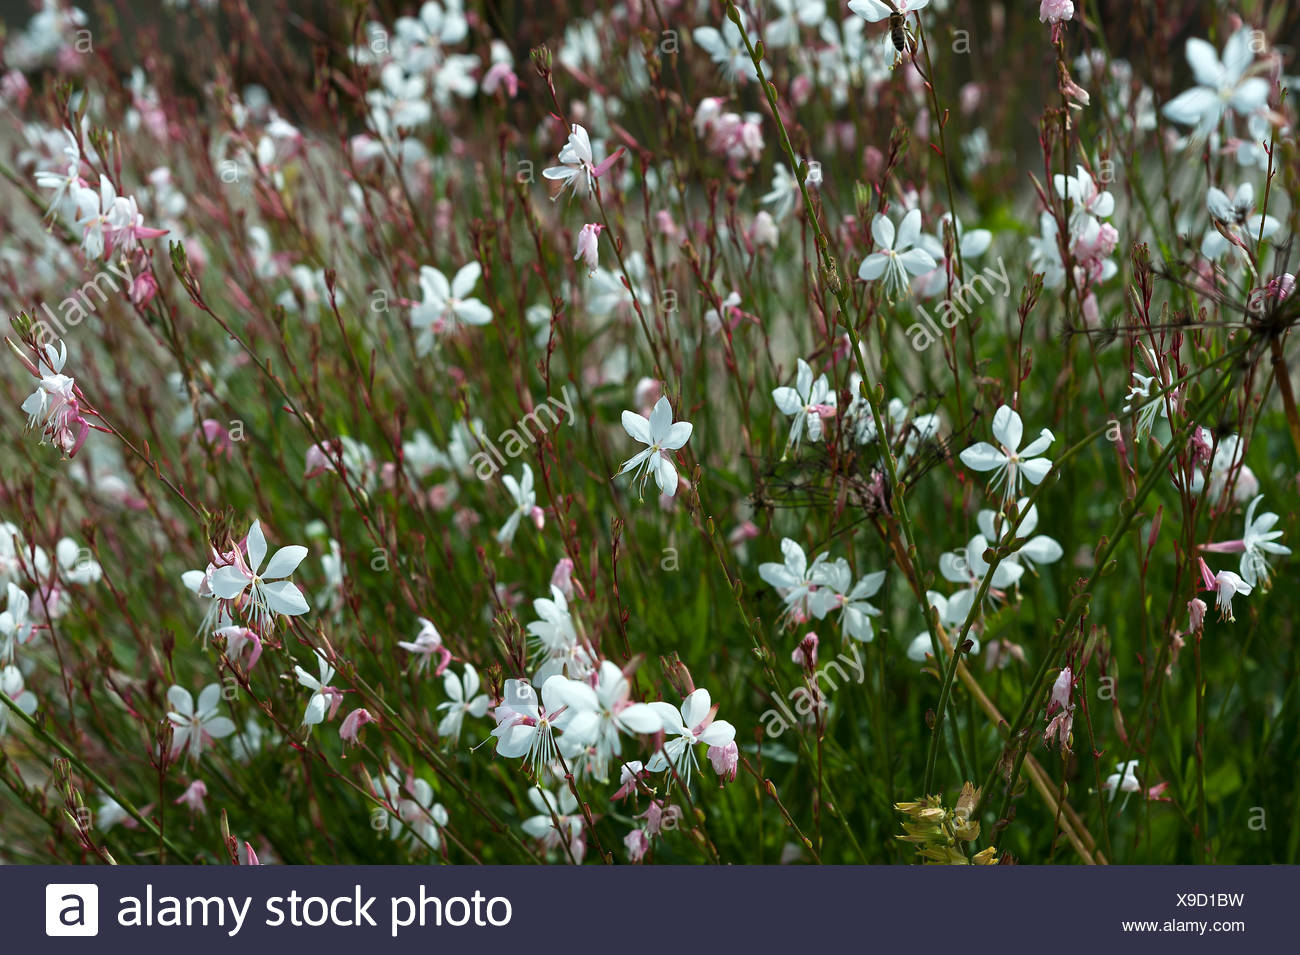 Indian feather (Gaura lindheimeri), Bayern, Germany - Stock Image